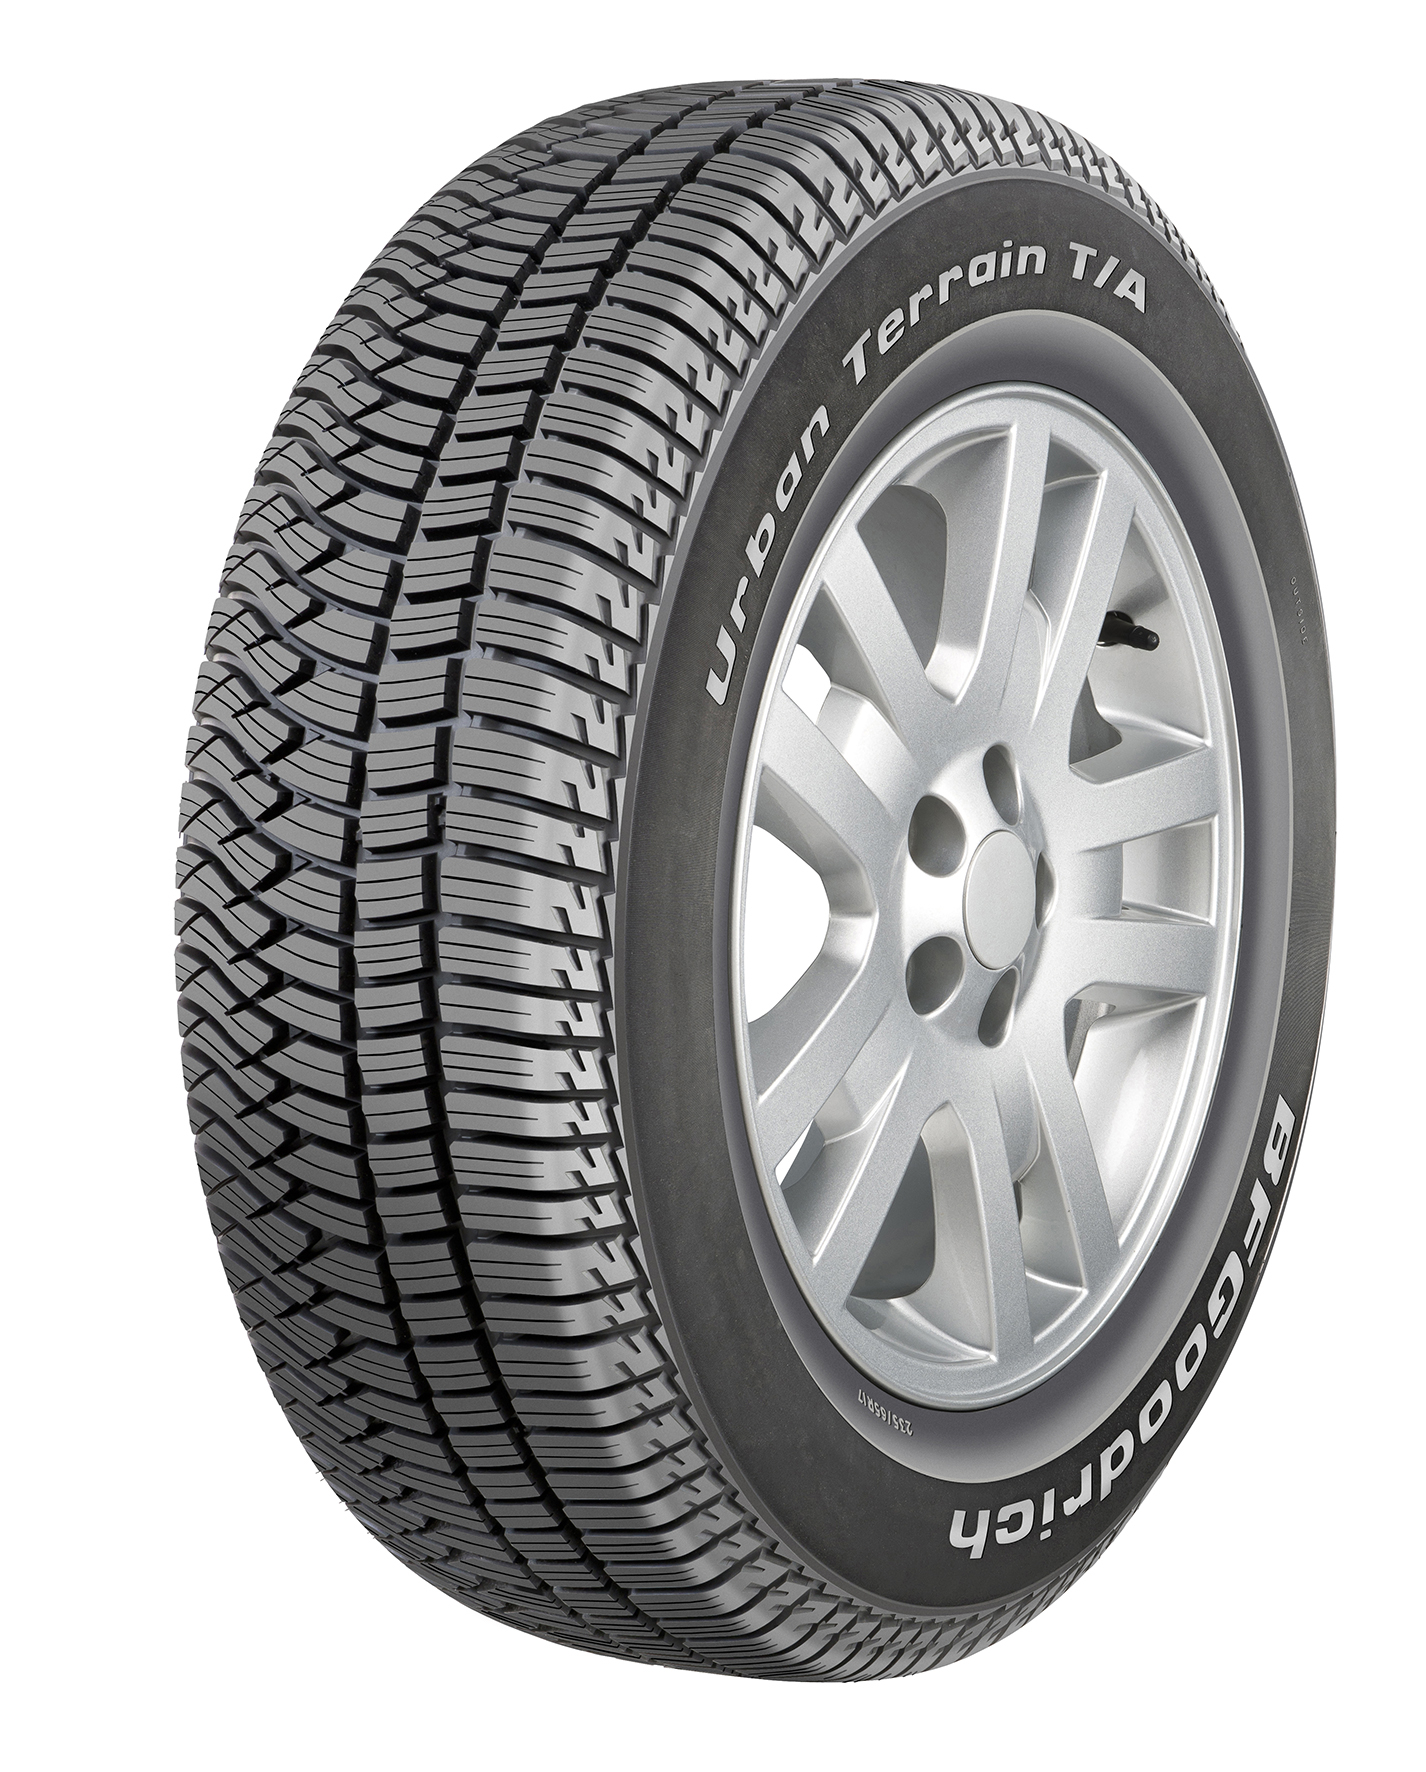 new suv and urban crossover tyre from bfgoodrich. Black Bedroom Furniture Sets. Home Design Ideas